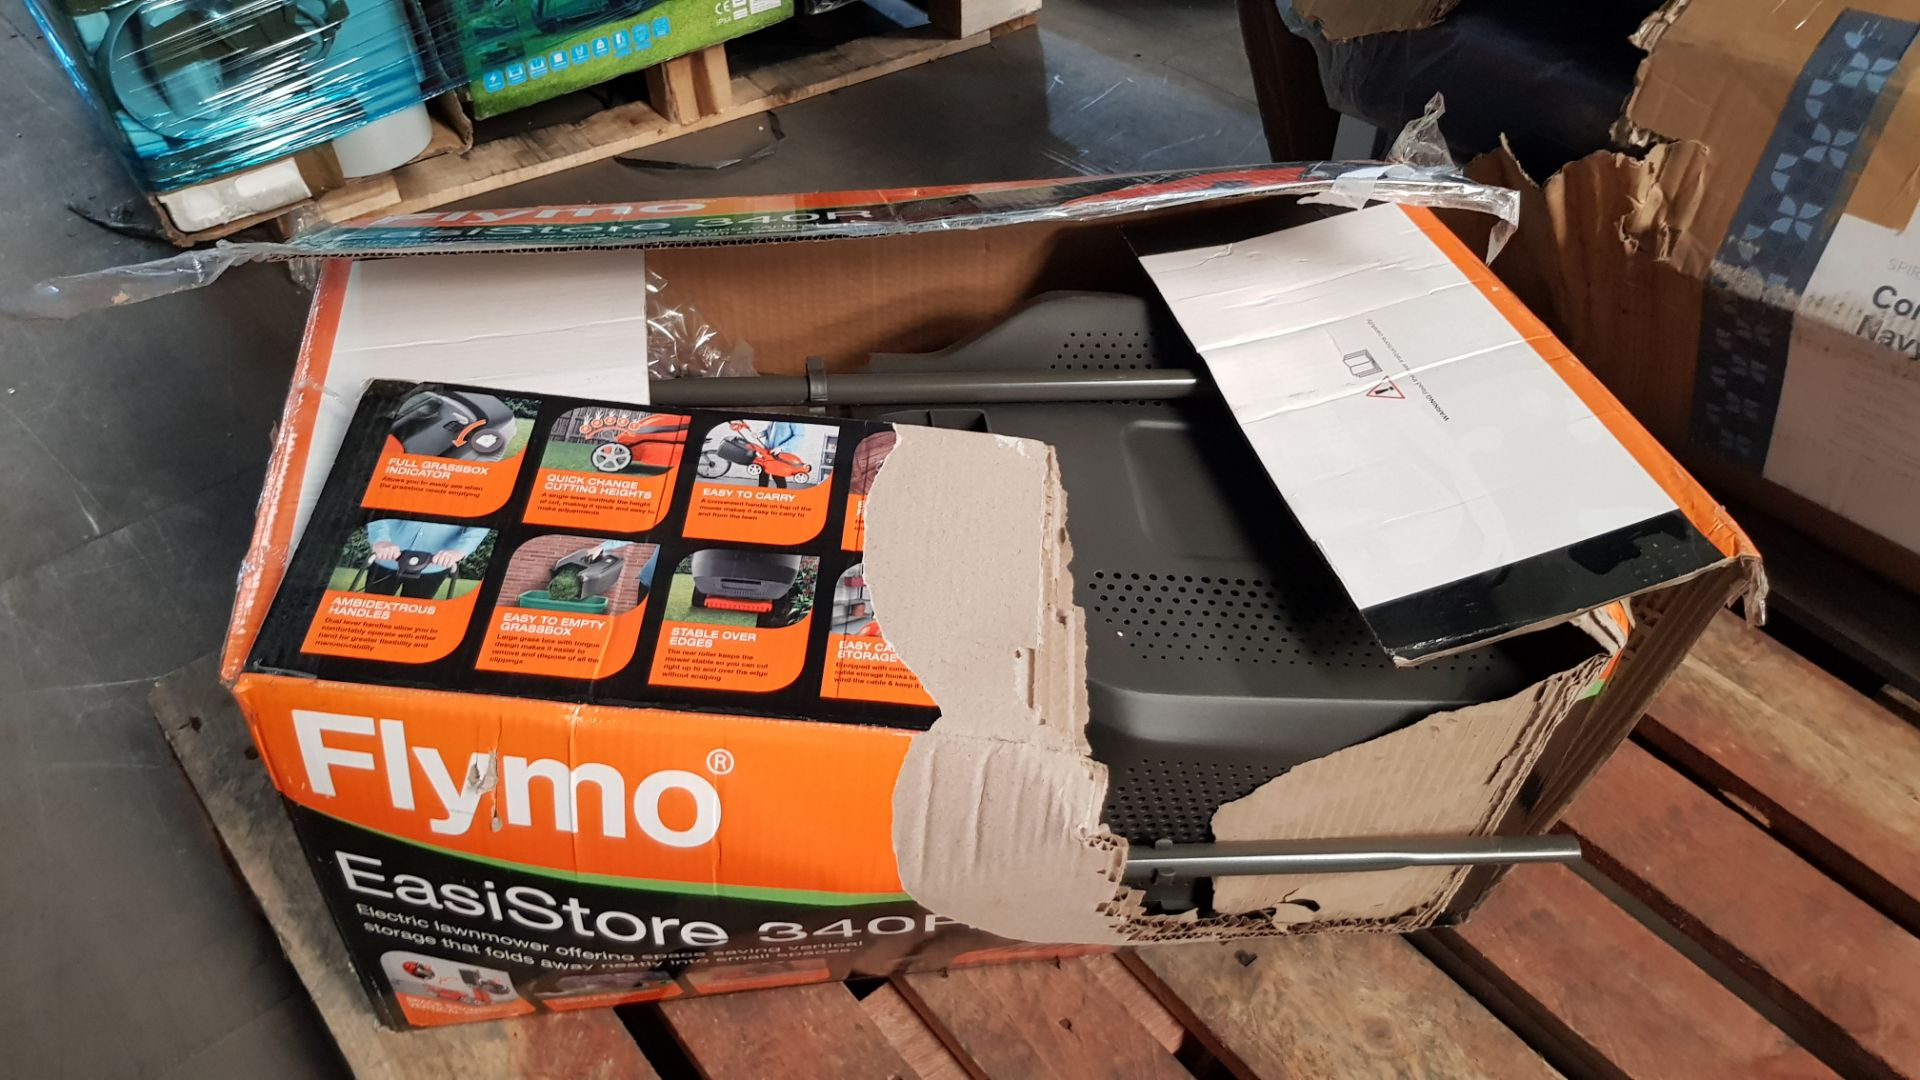 (P3) 1x Flymo EasiStore 340R. RRP £115.00. (Damaged Box – Contents Appear Clean, Unused). - Image 4 of 5